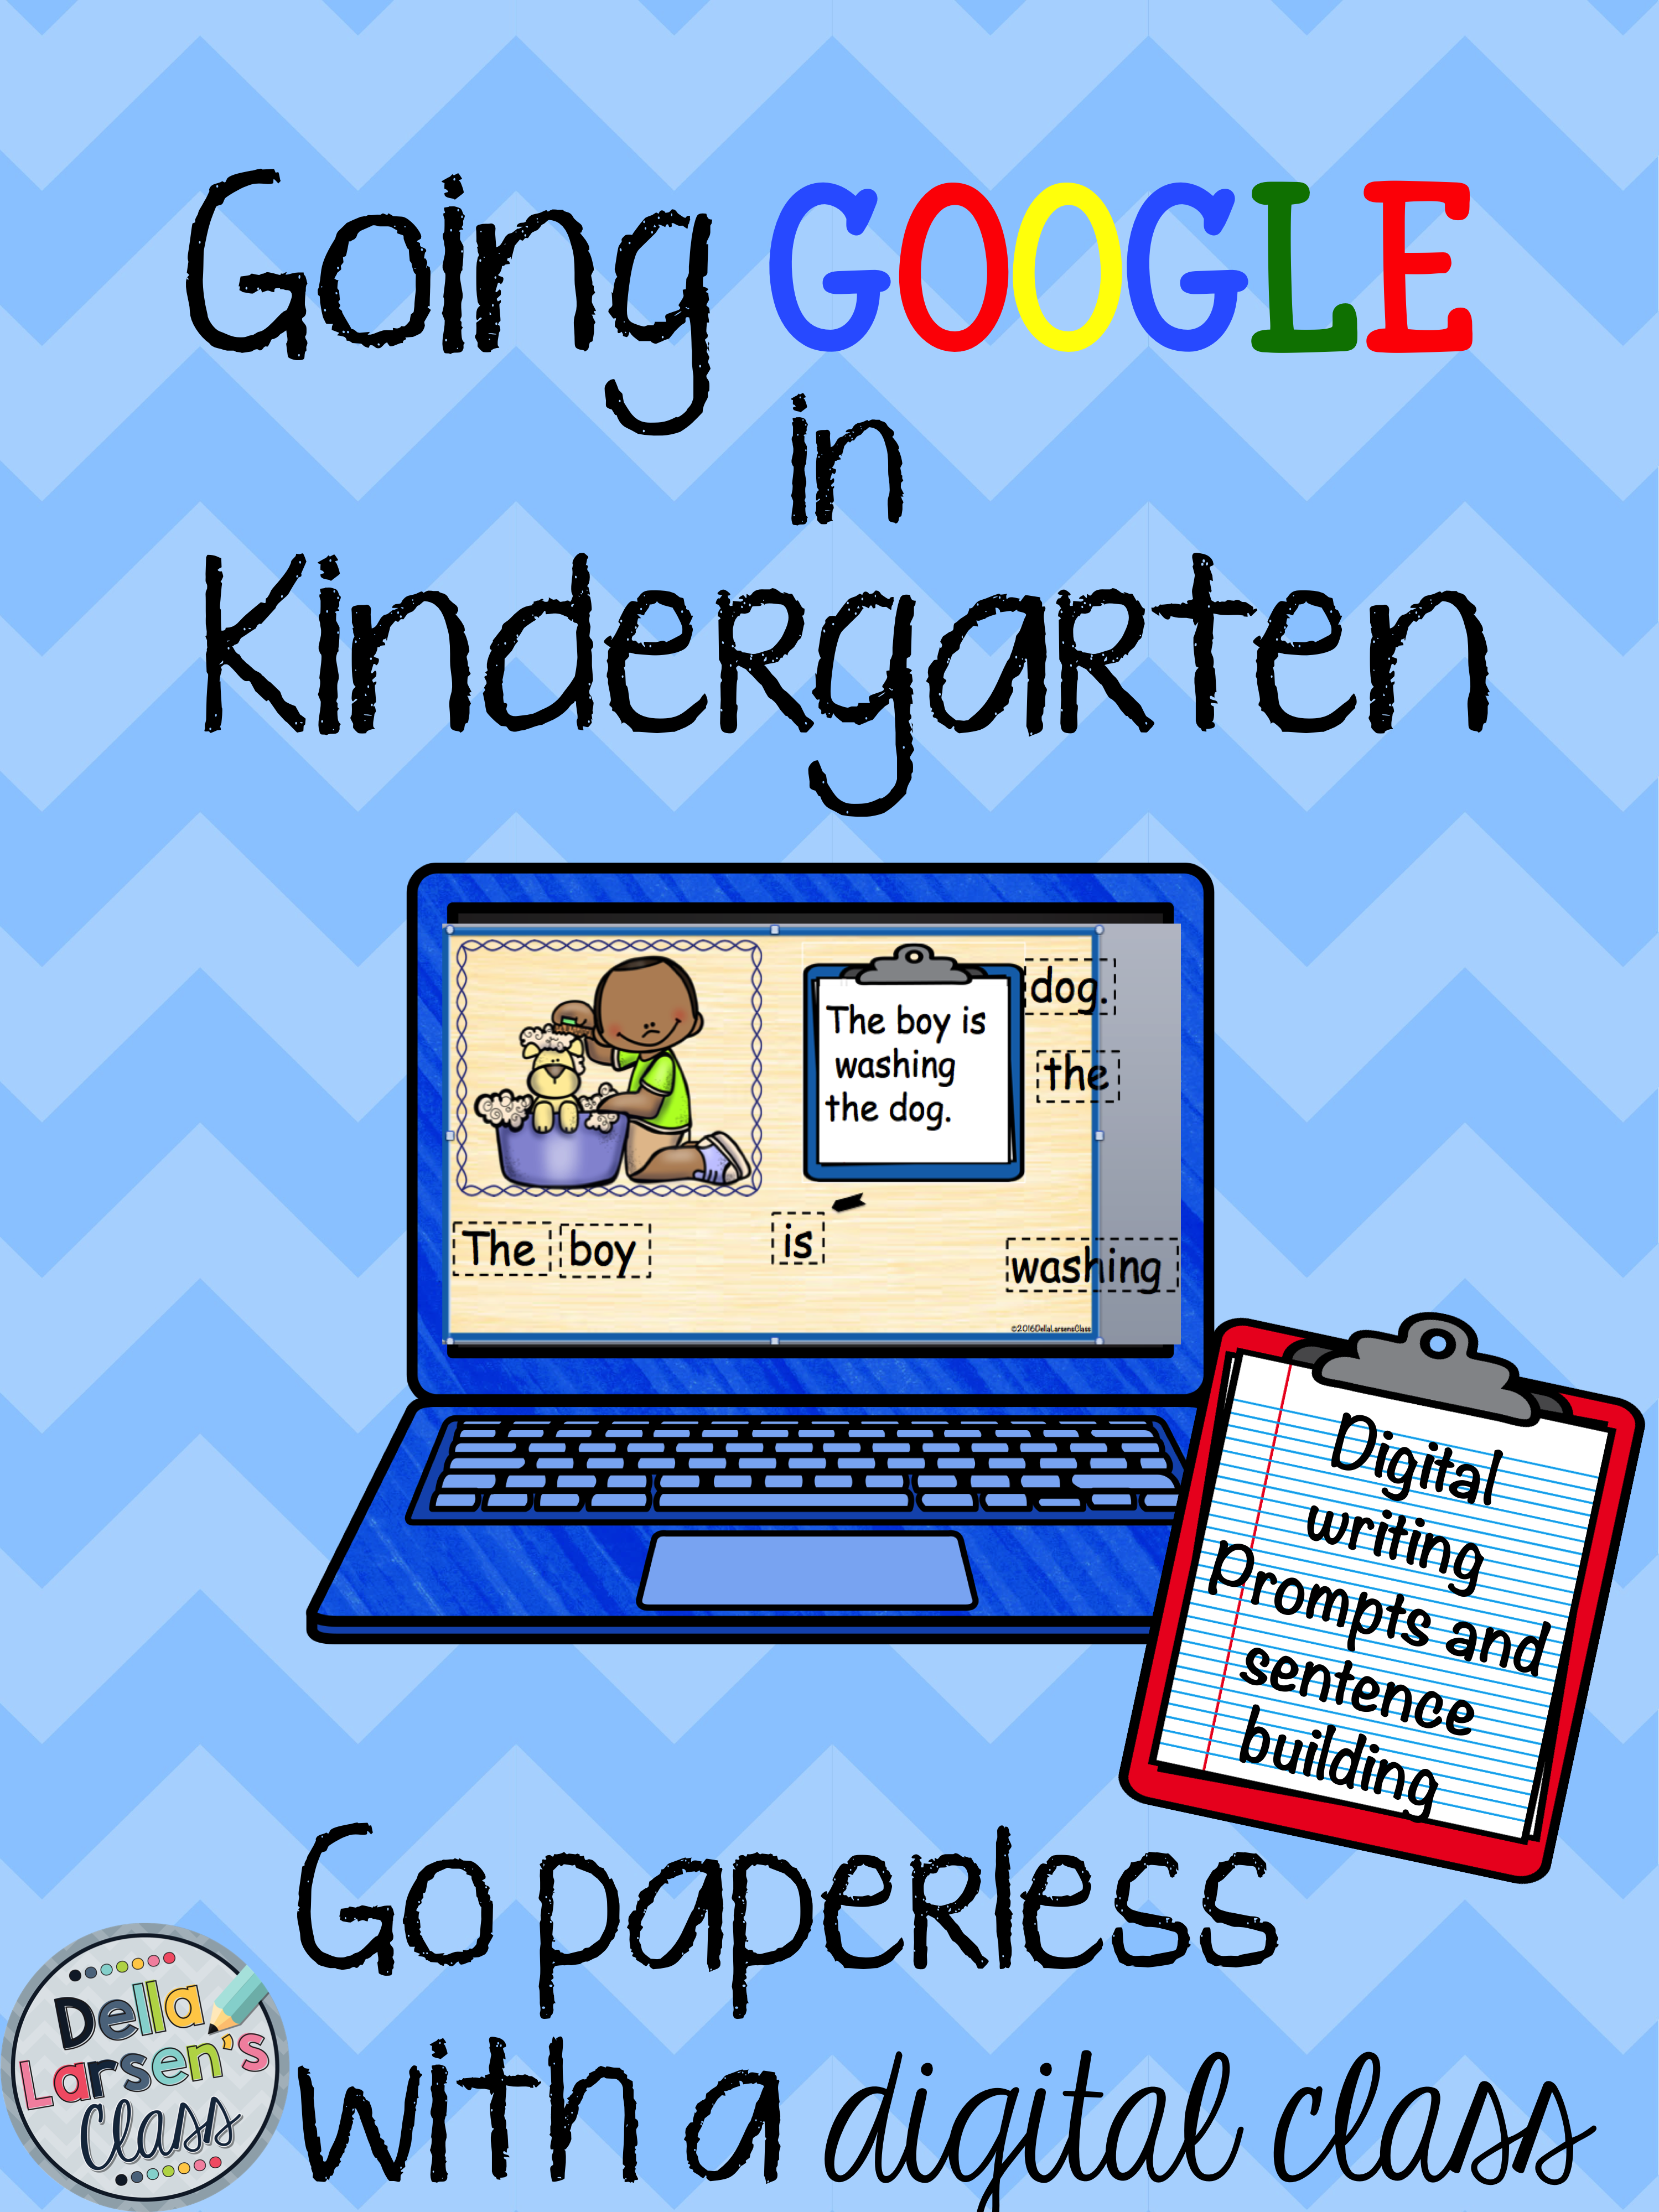 Google classroom sentence building for kindergarten google google classroom sentence building for kindergarten google classroom for kindergarten are you going 1 fandeluxe Choice Image